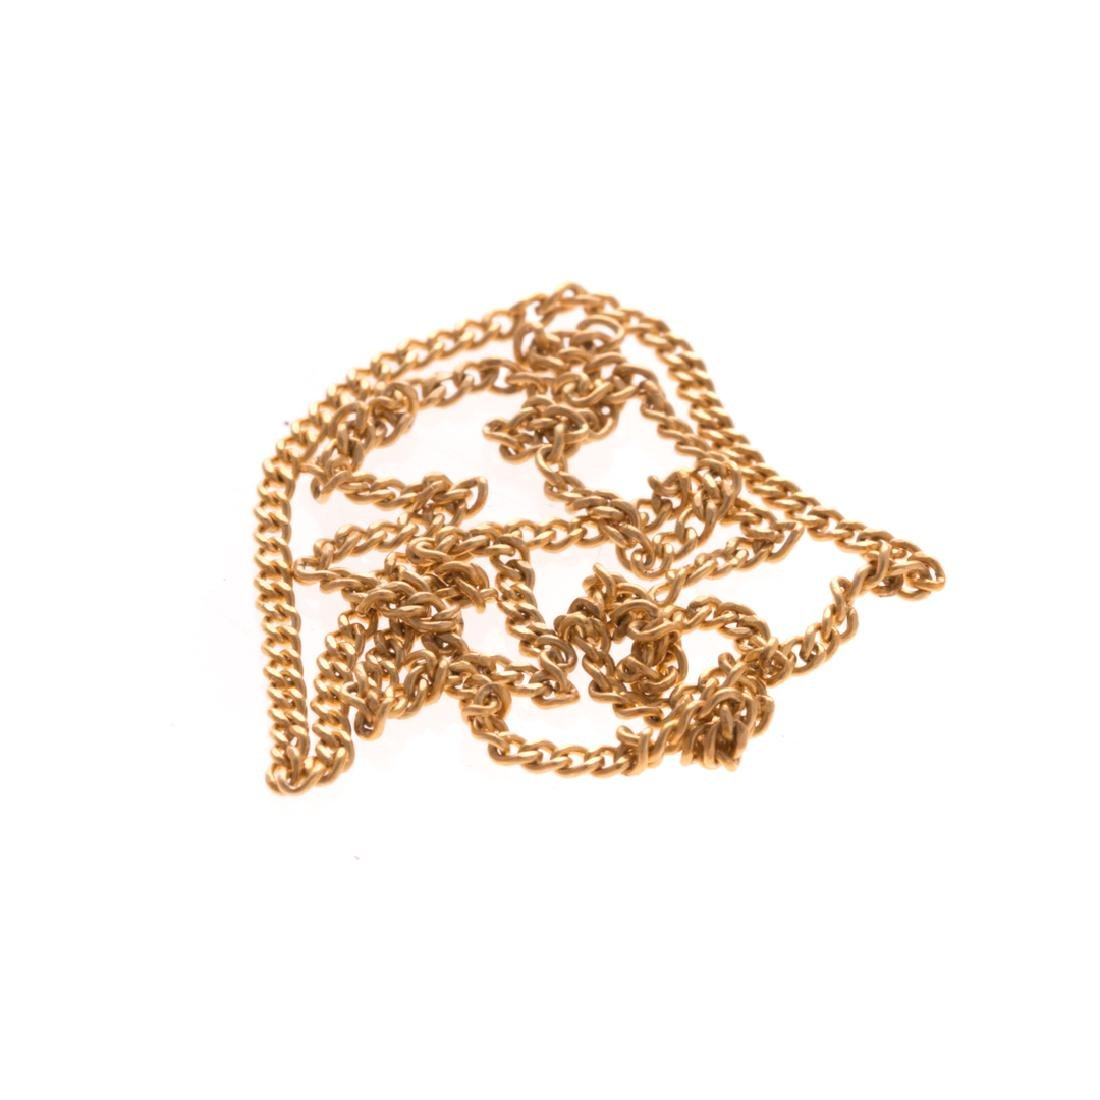 A Collection of Lady's Jewelry in Gold - 3